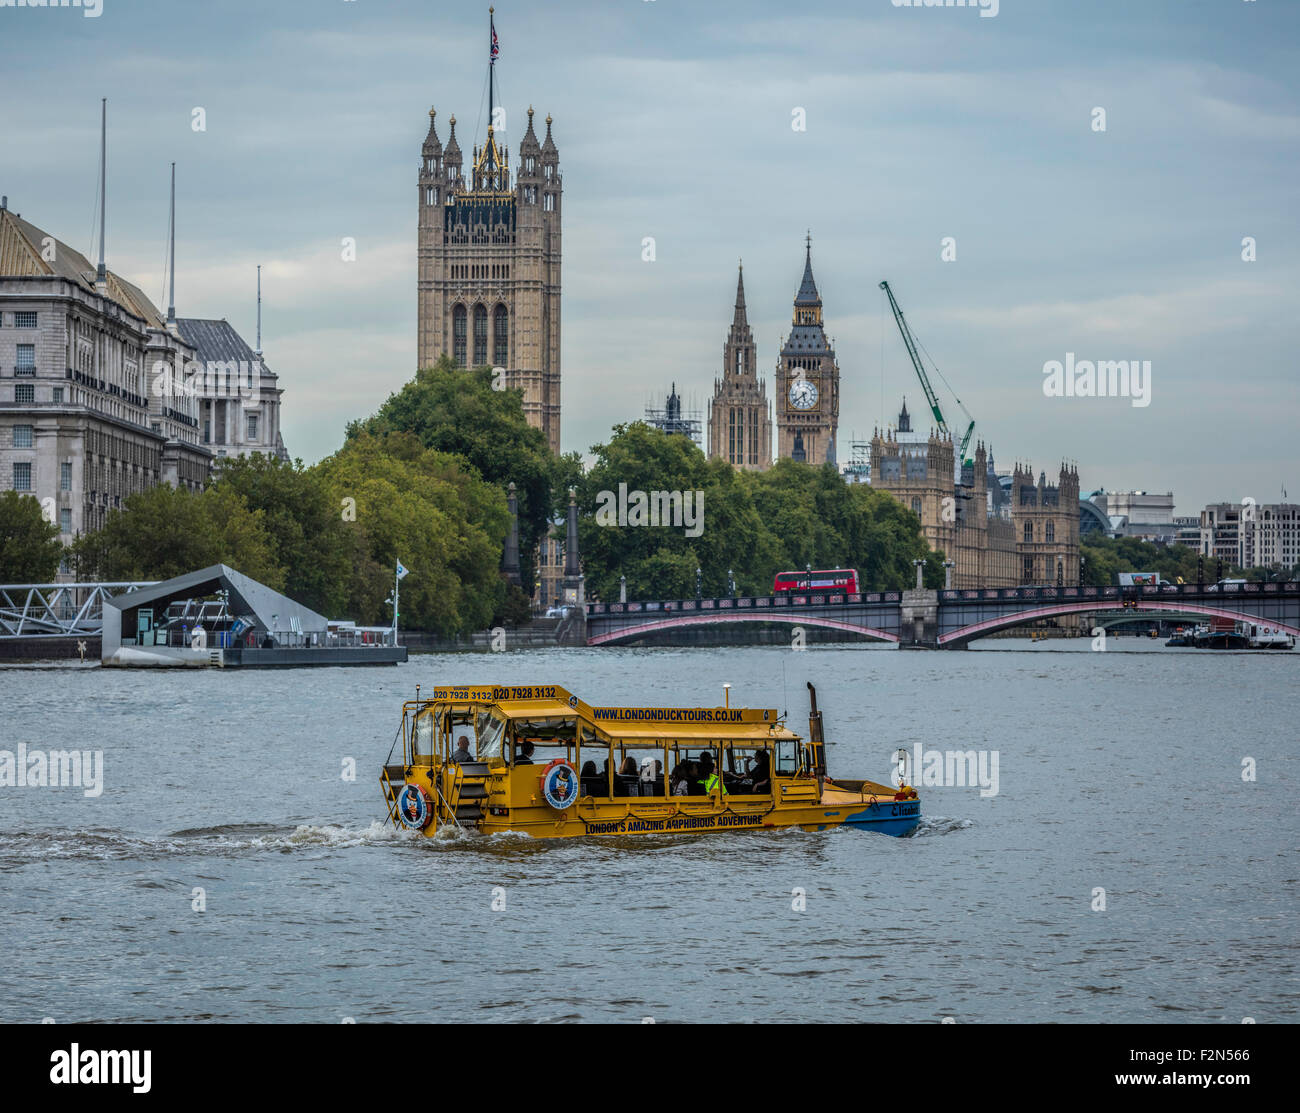 Duck tours amphibious vehicle on the River Thames heading towards Lambeth Bridge and Westminster in London - Stock Image